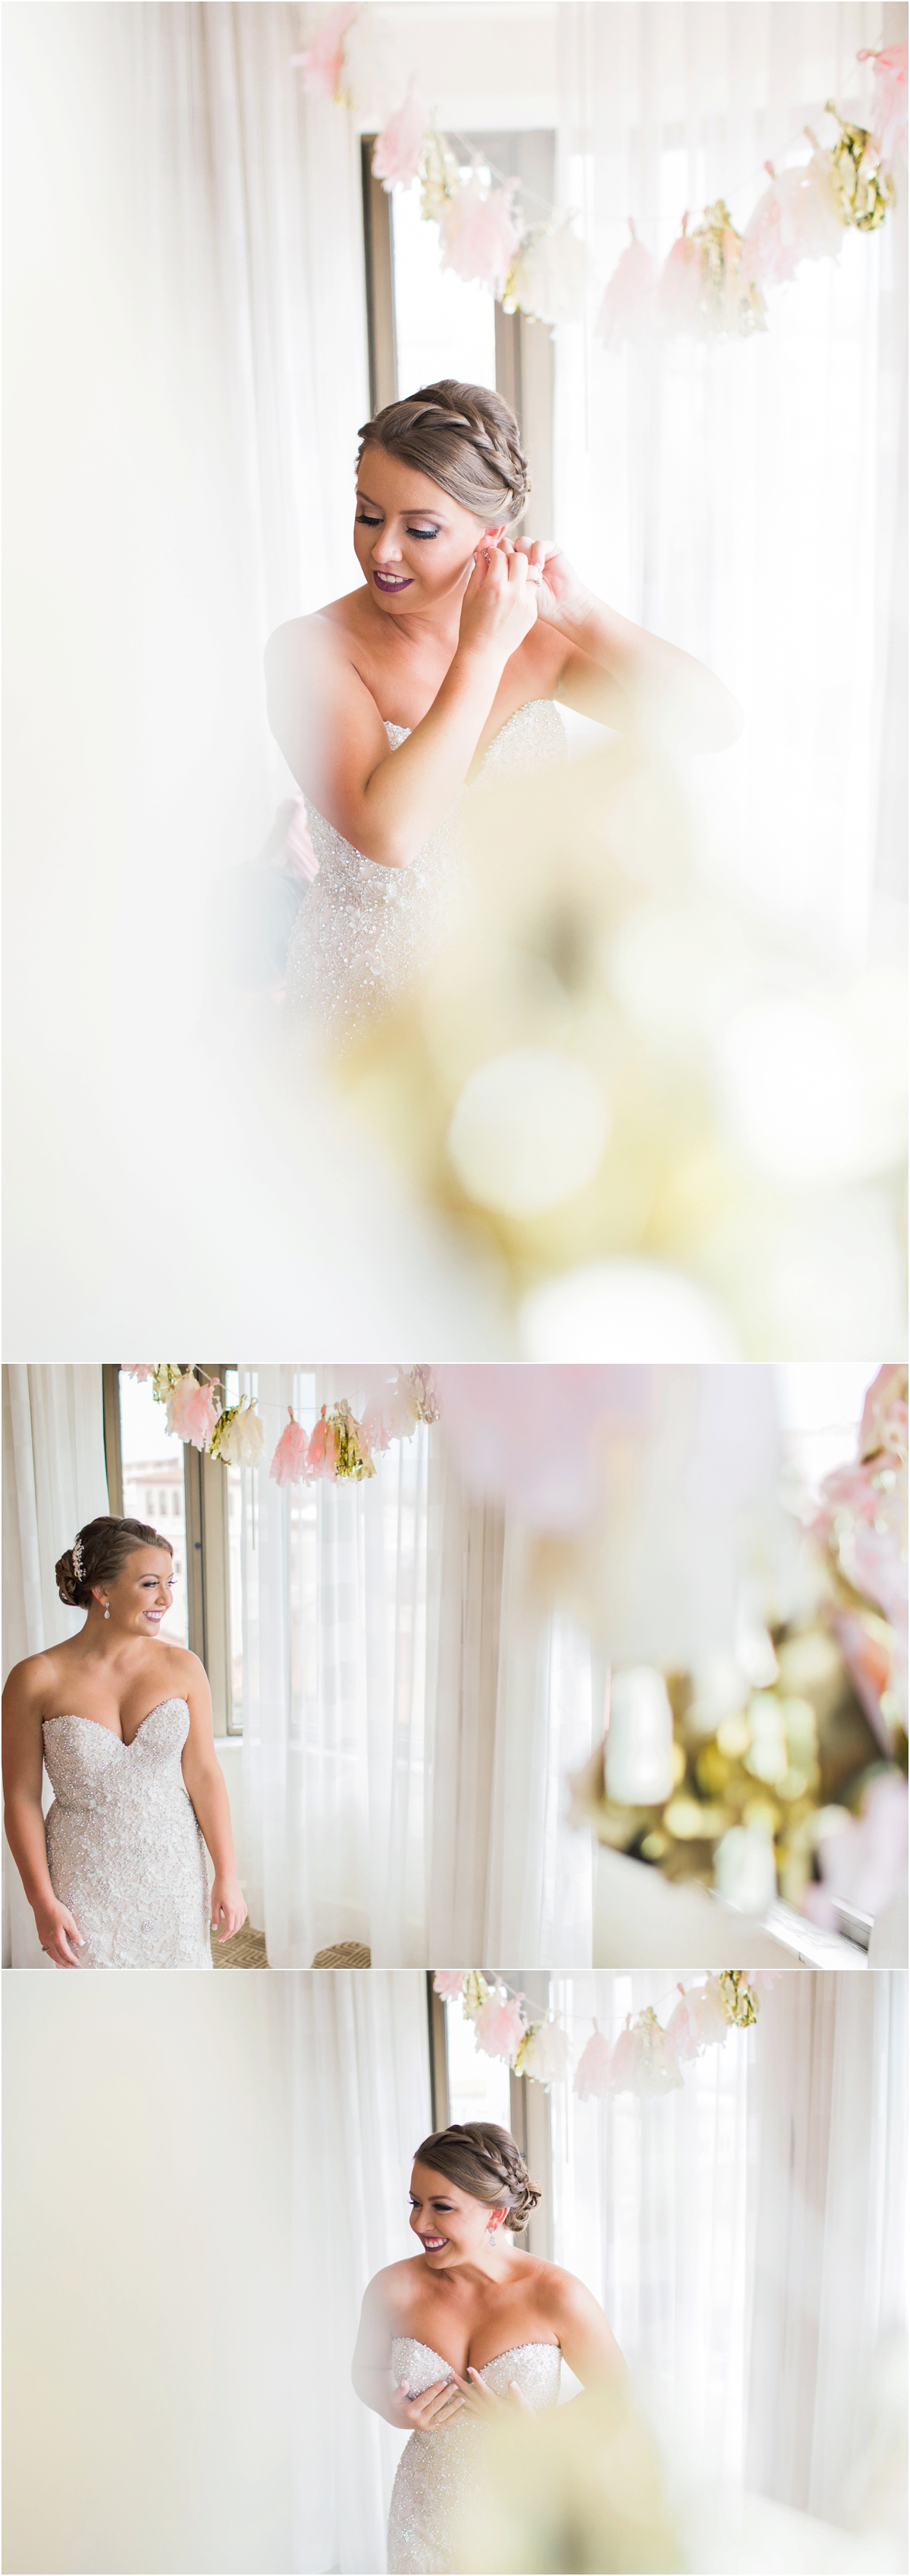 Boca-Raton-Florida-Addison-Wedding-Photography_0010